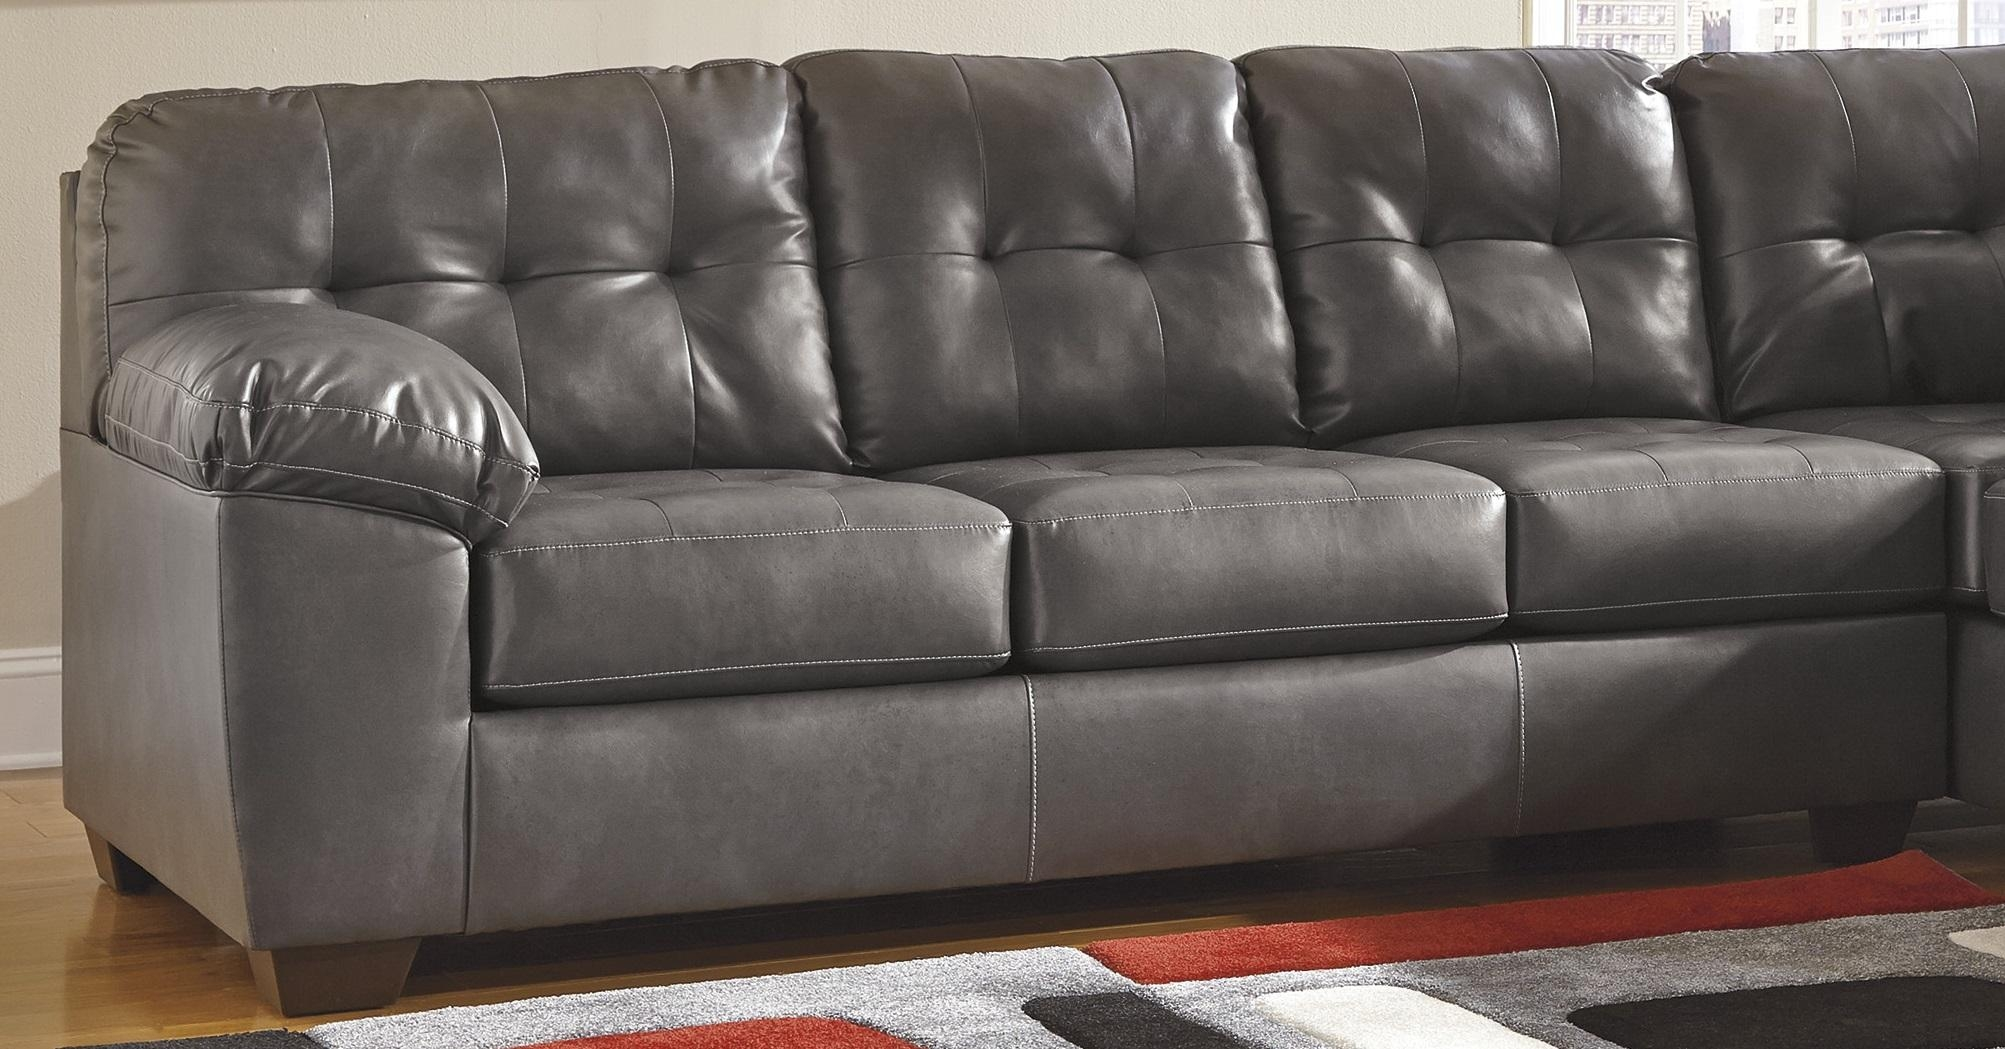 Sofas Center : Grey Leather Sofa Recliner Ashley Gray And Within Charcoal Grey Leather Sofas (Image 19 of 20)